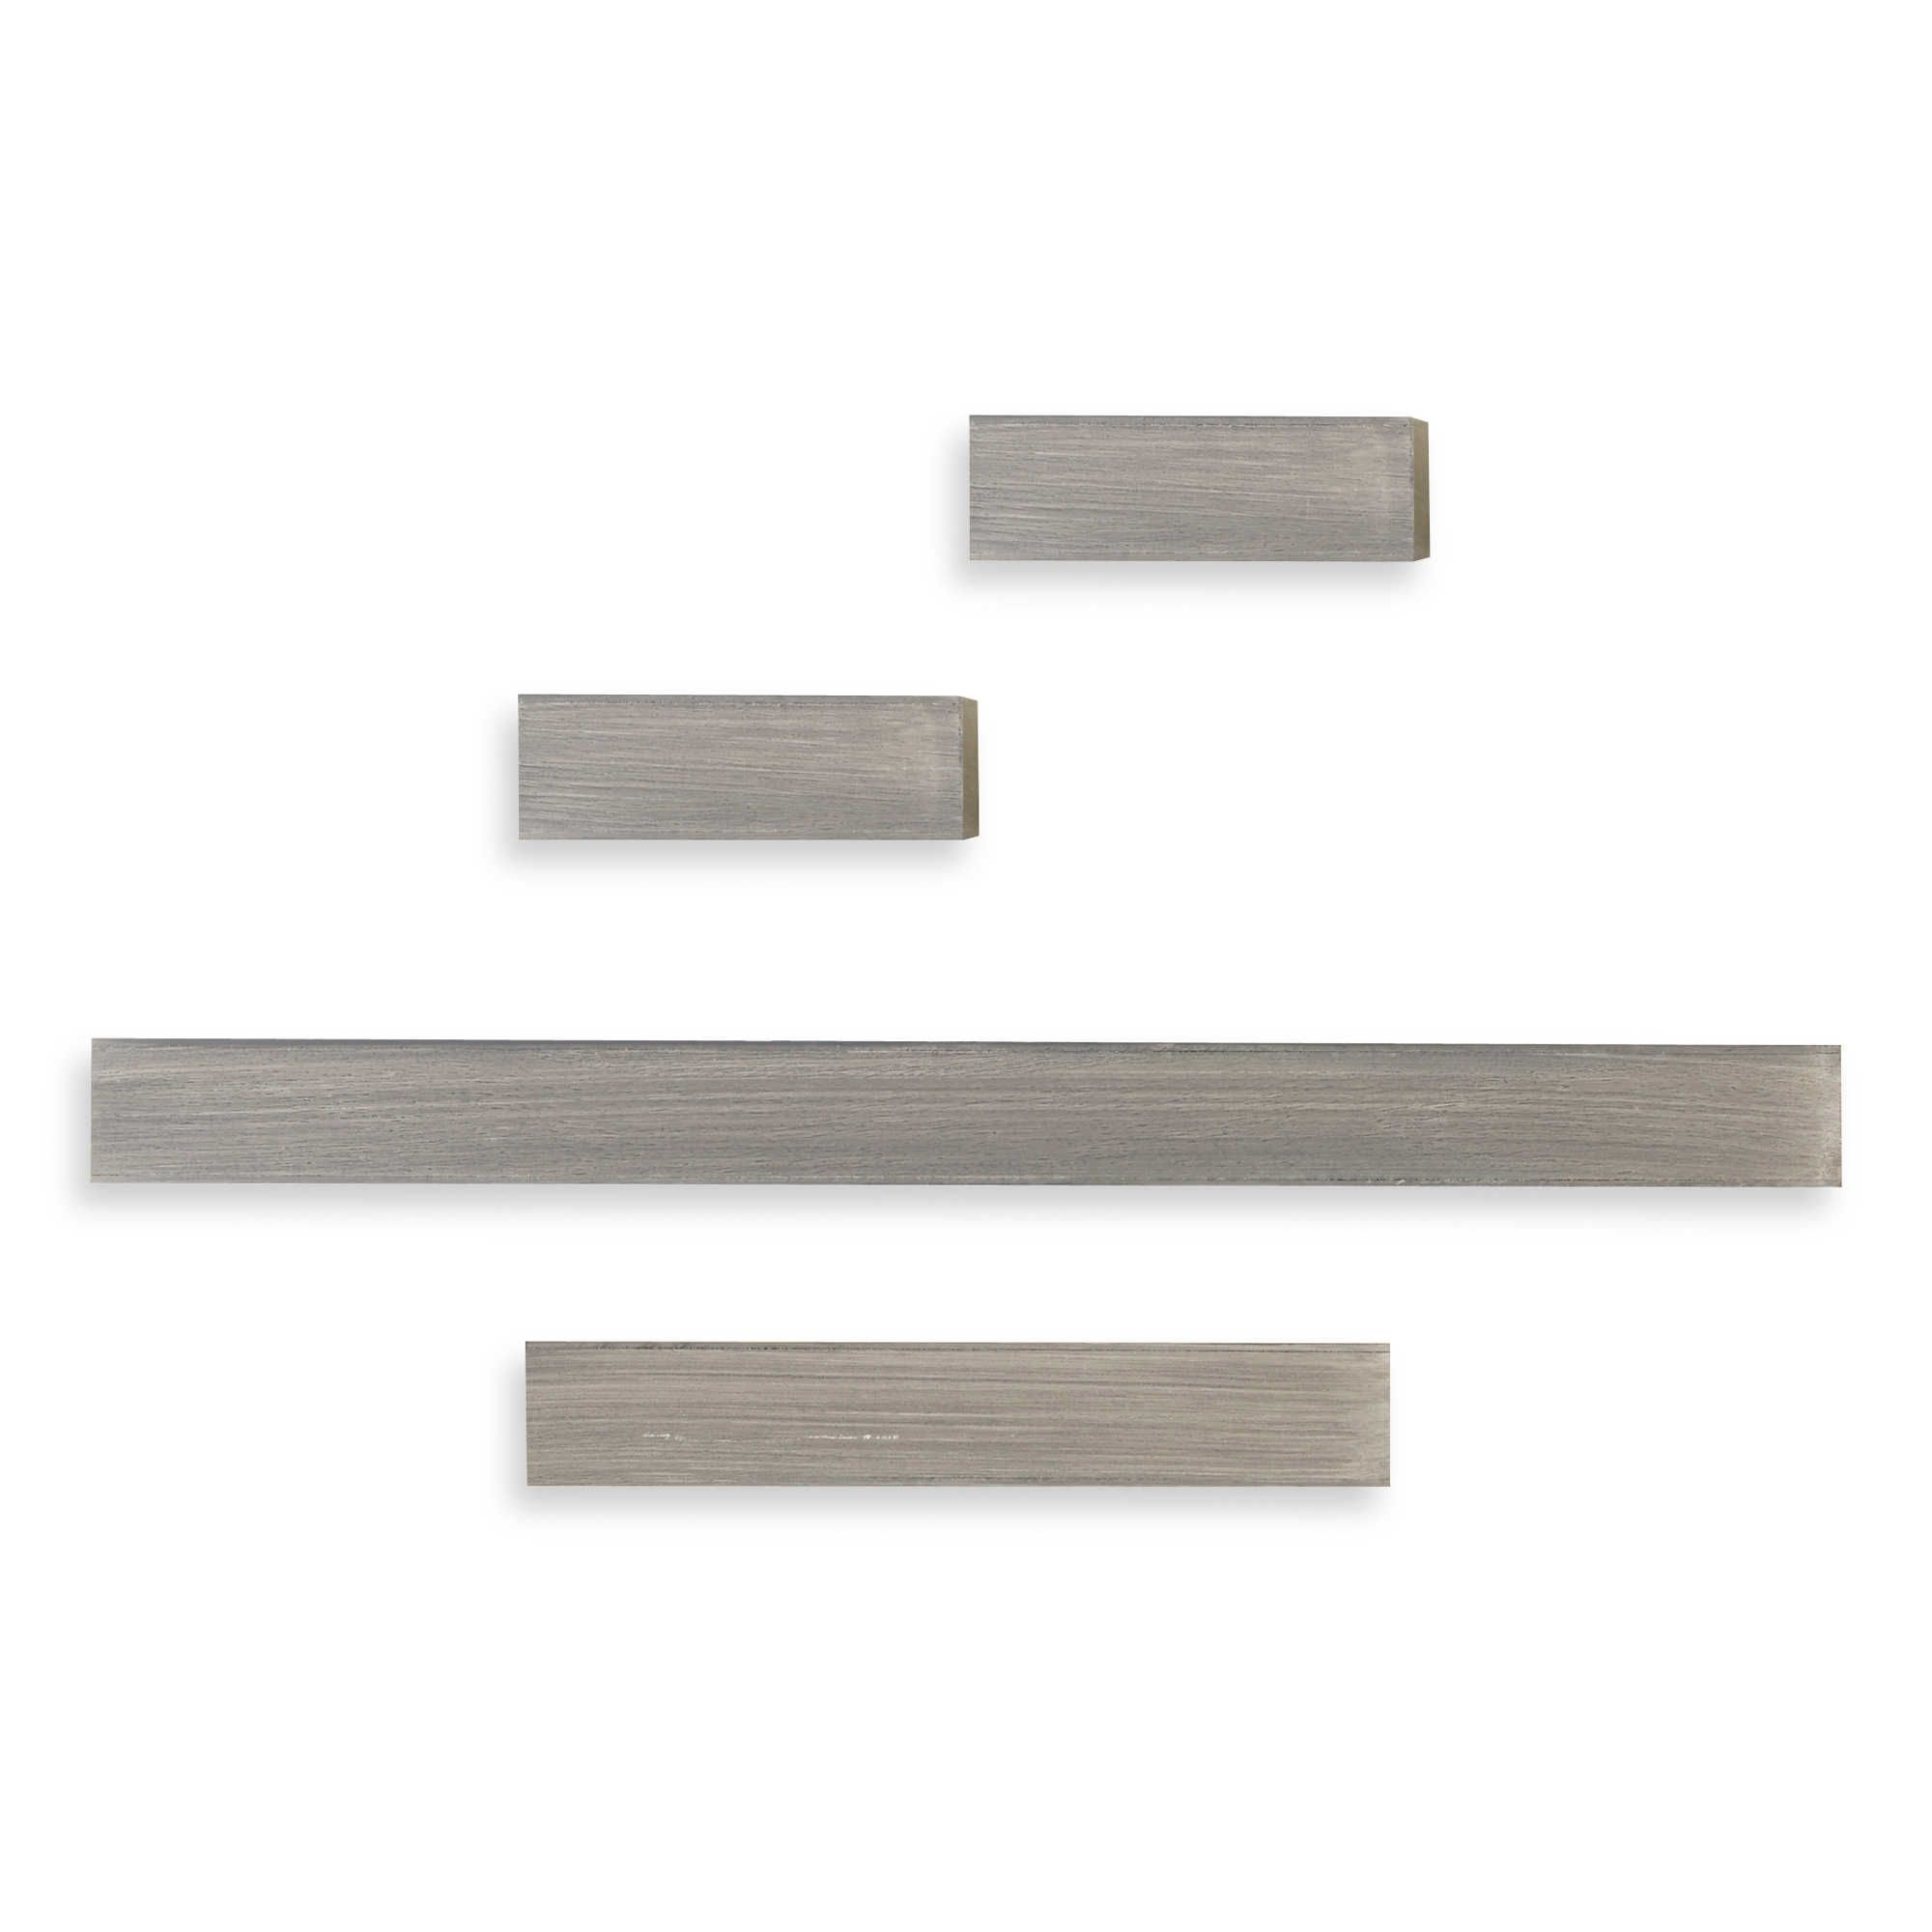 Melannco Floating Shelves Melannco® Floating Shelves In Grey Set Of 4  Living Room